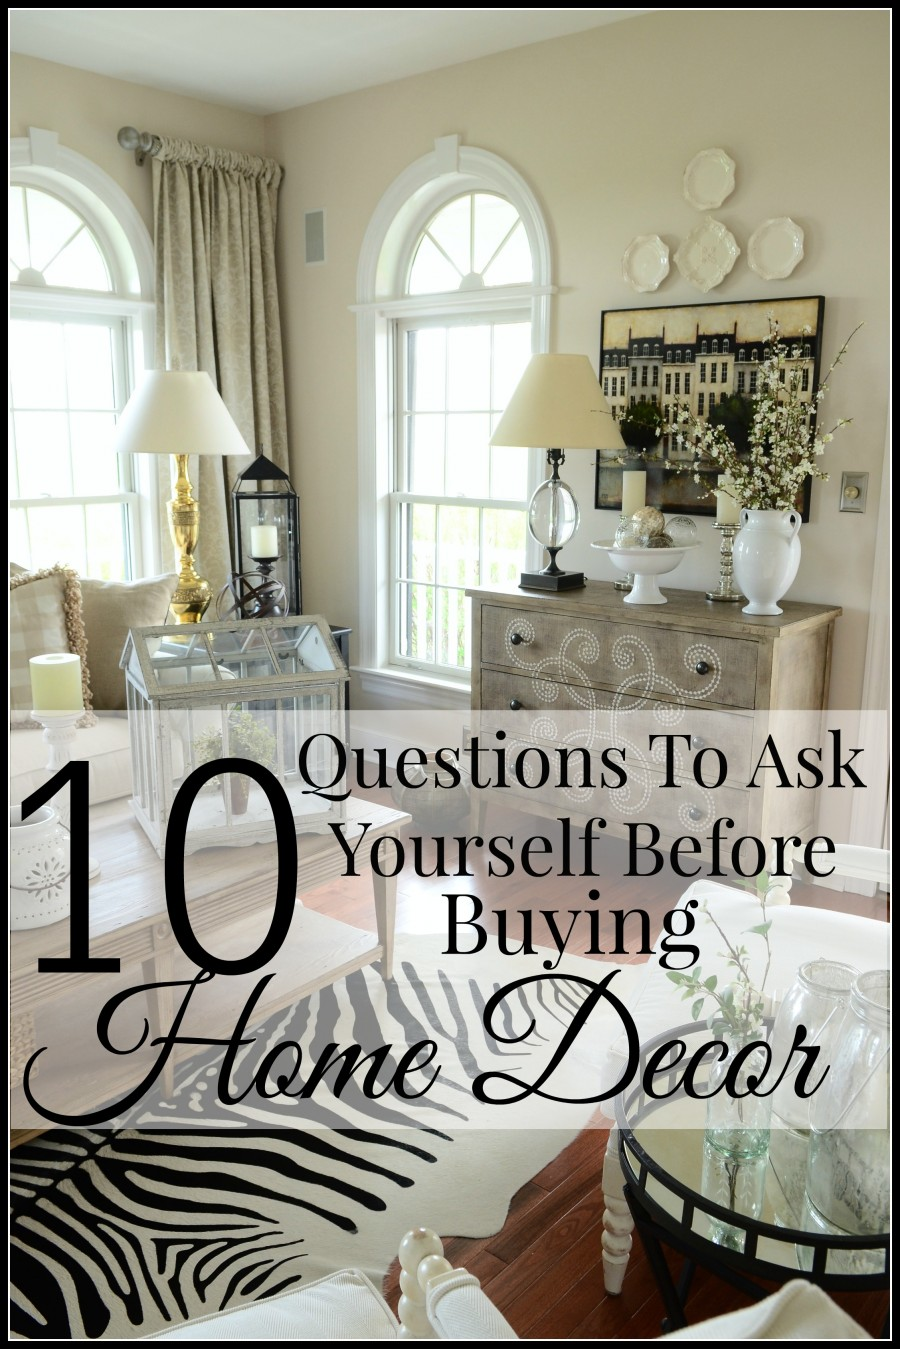 10 questions to ask yourself before buying home decor-title page-stonegableblog